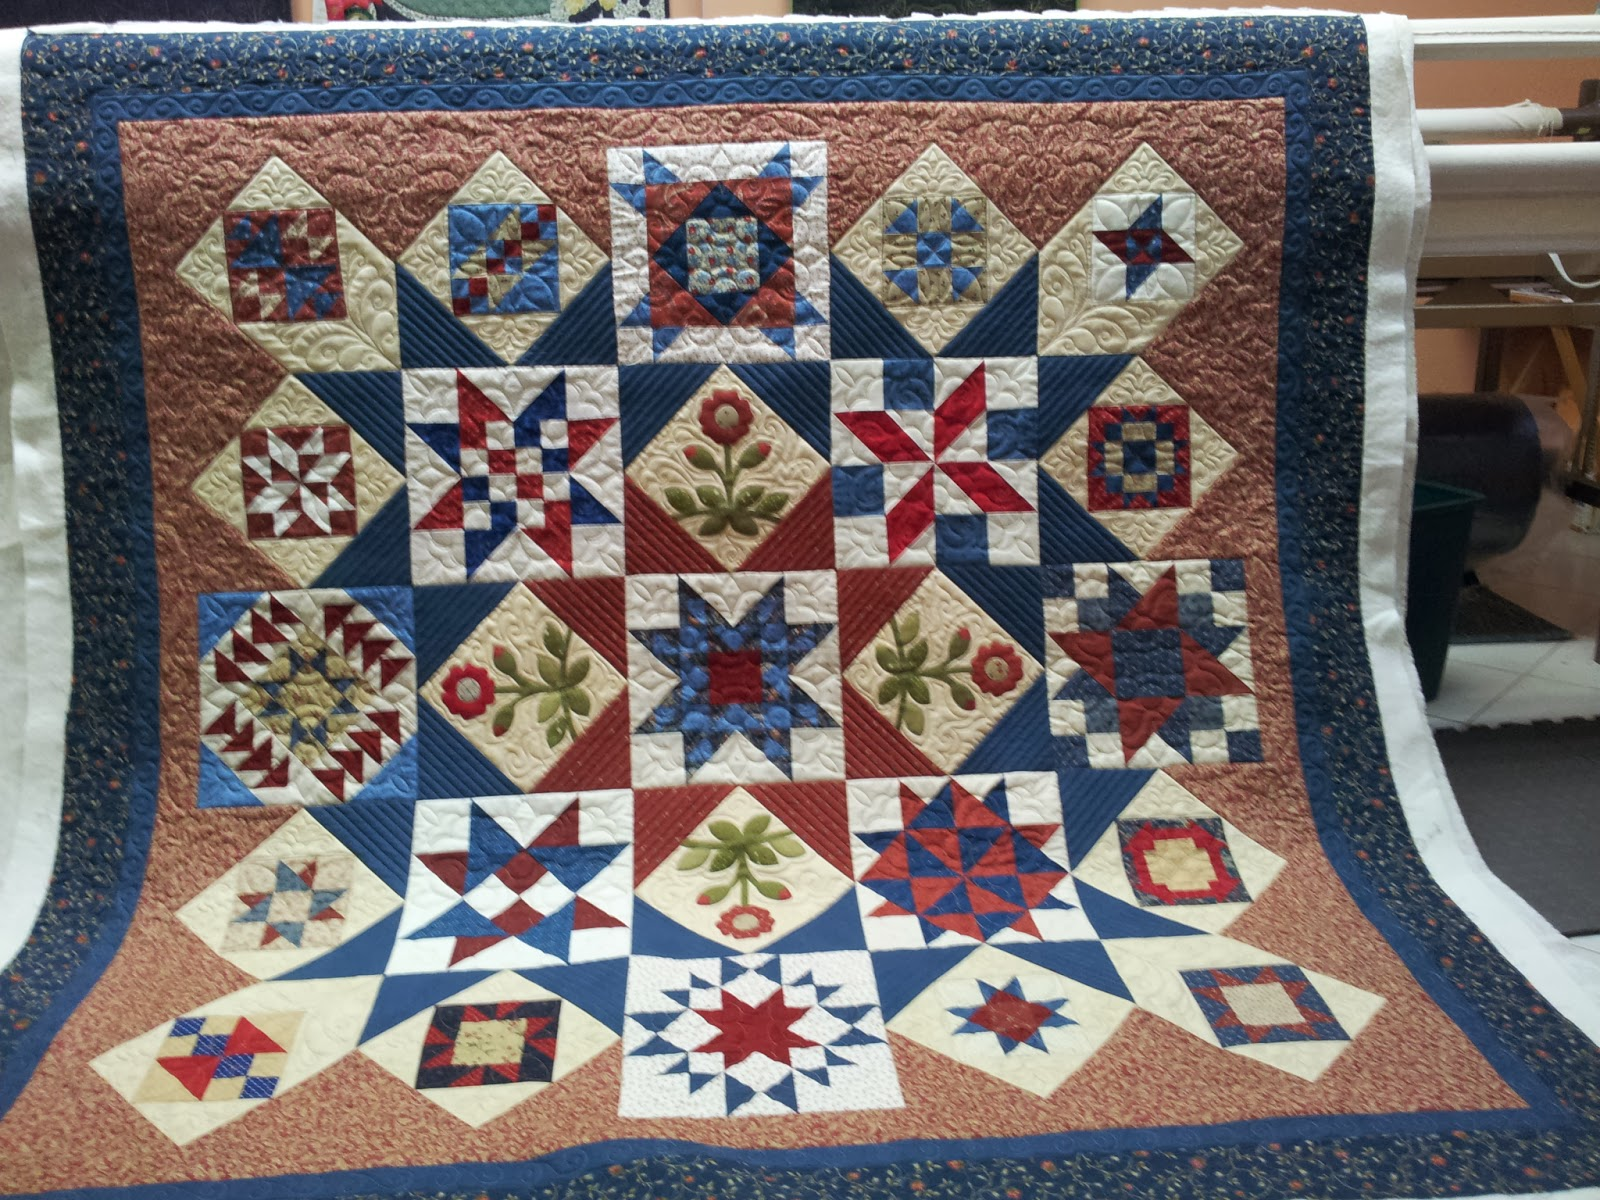 Caledonia Quilter Sampler Quilt And Red Hat Breakfast